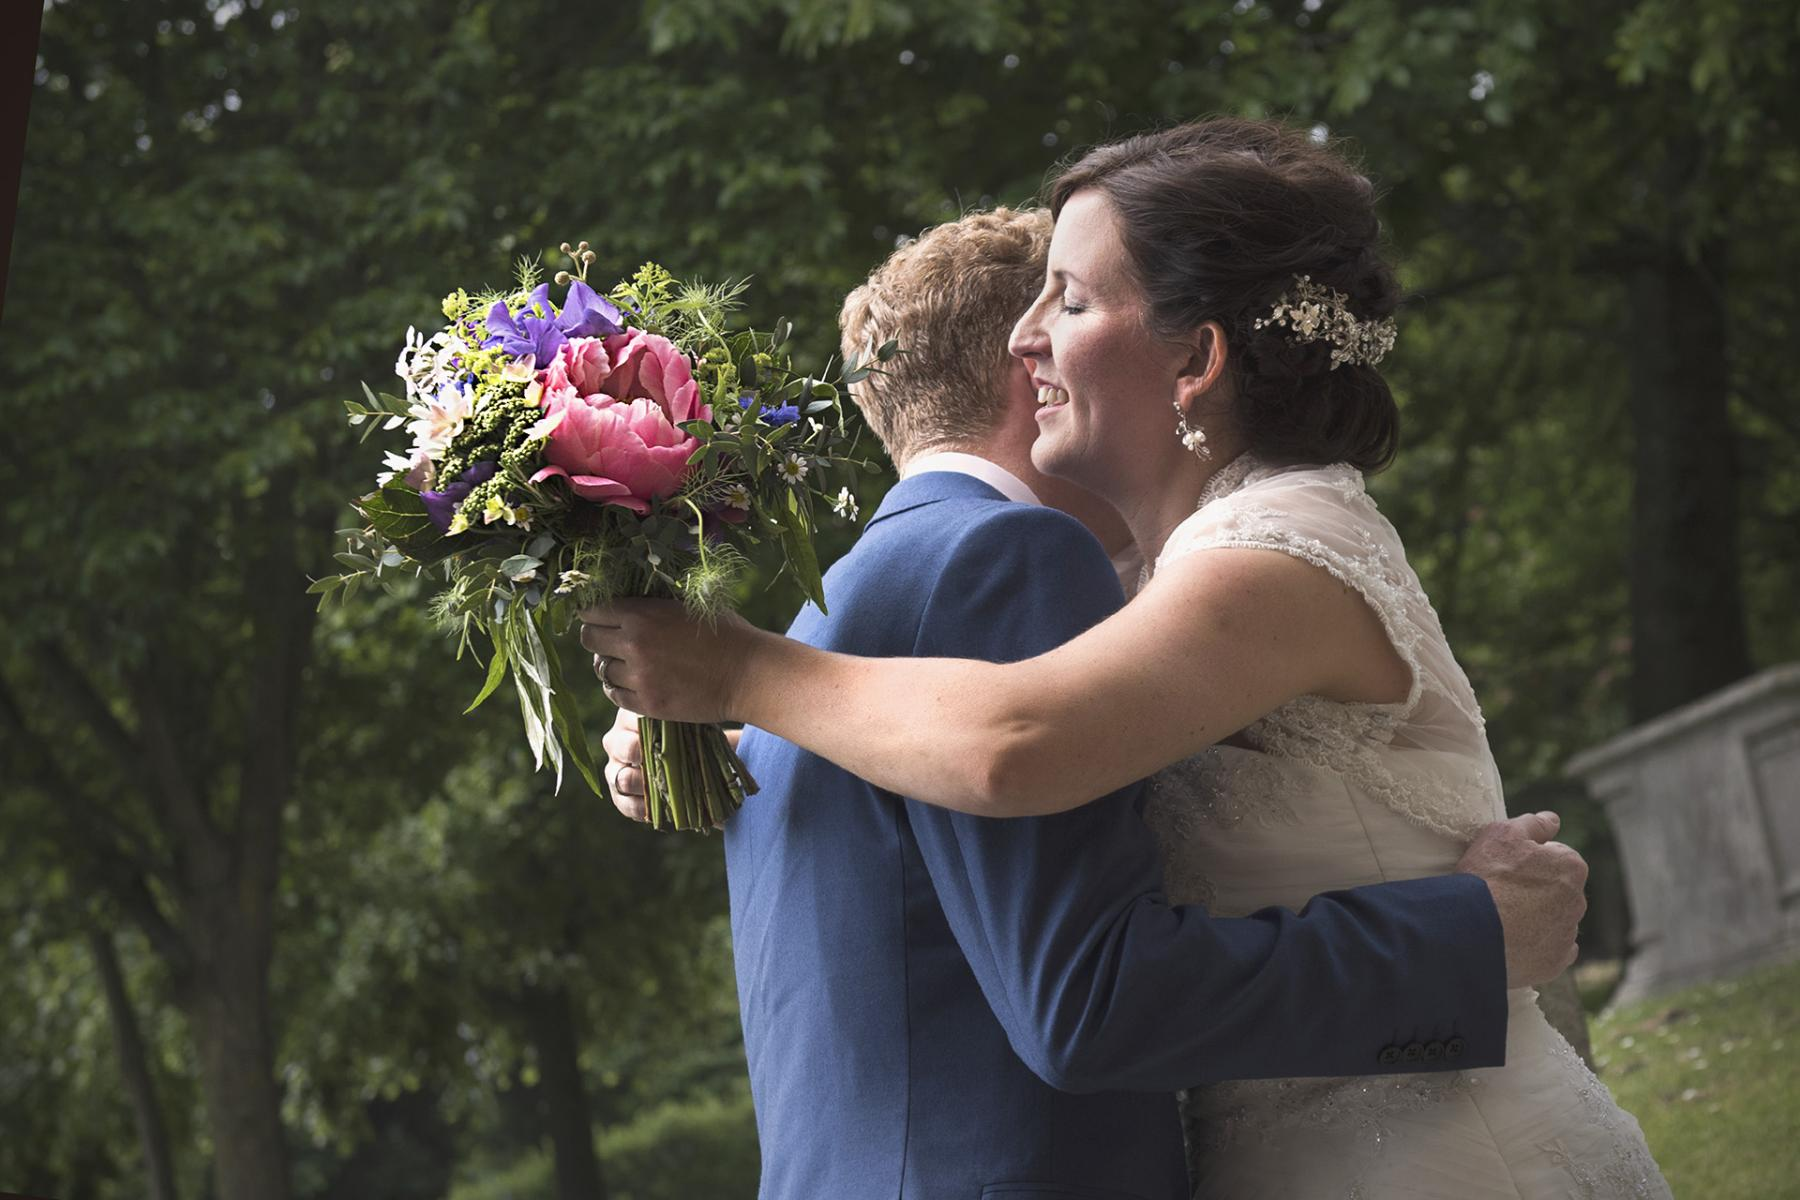 bride-groom-hug-summer-wedding-photography-south-wales-wedding-photographer